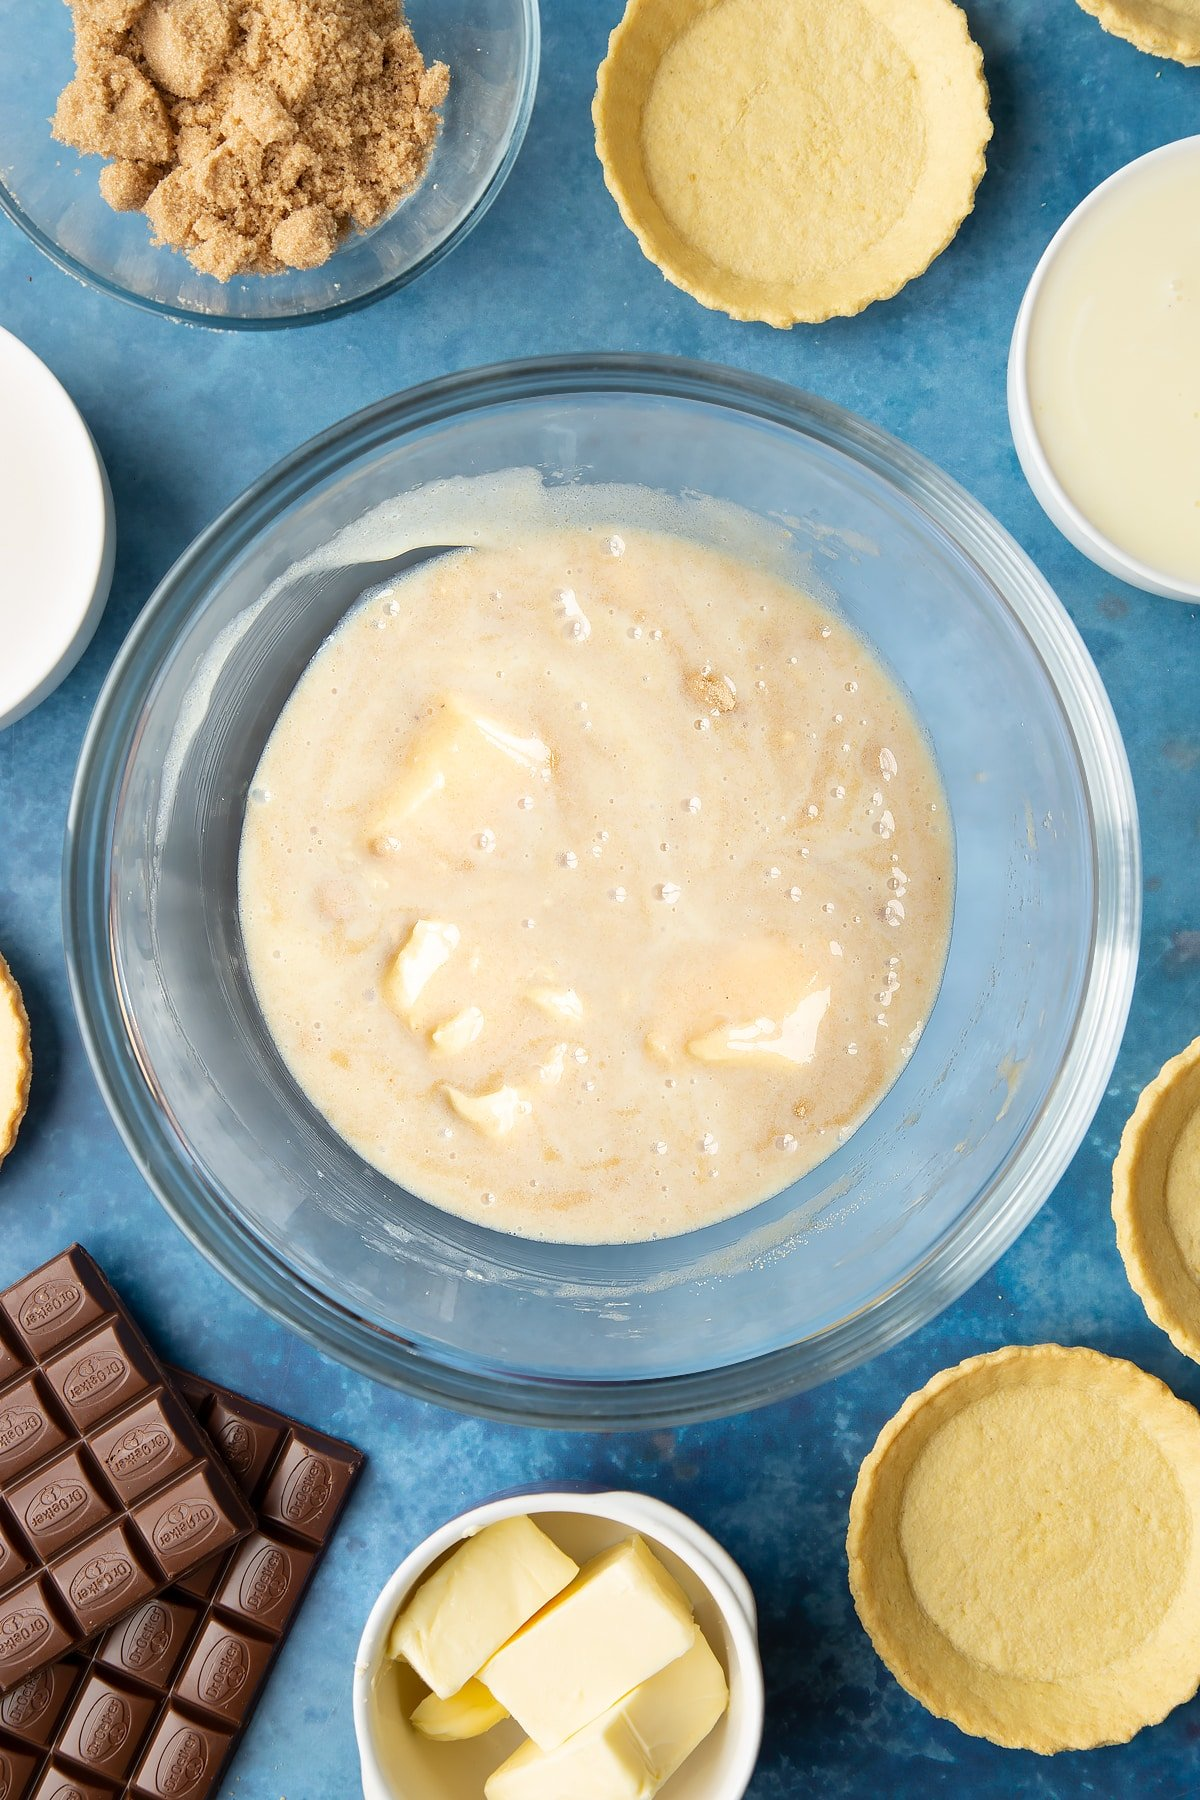 Light brown sugar, butter and condensed milk stirred together in a large mixing bowl. Ingredients to make mini chocolate tarts surround the bowl.